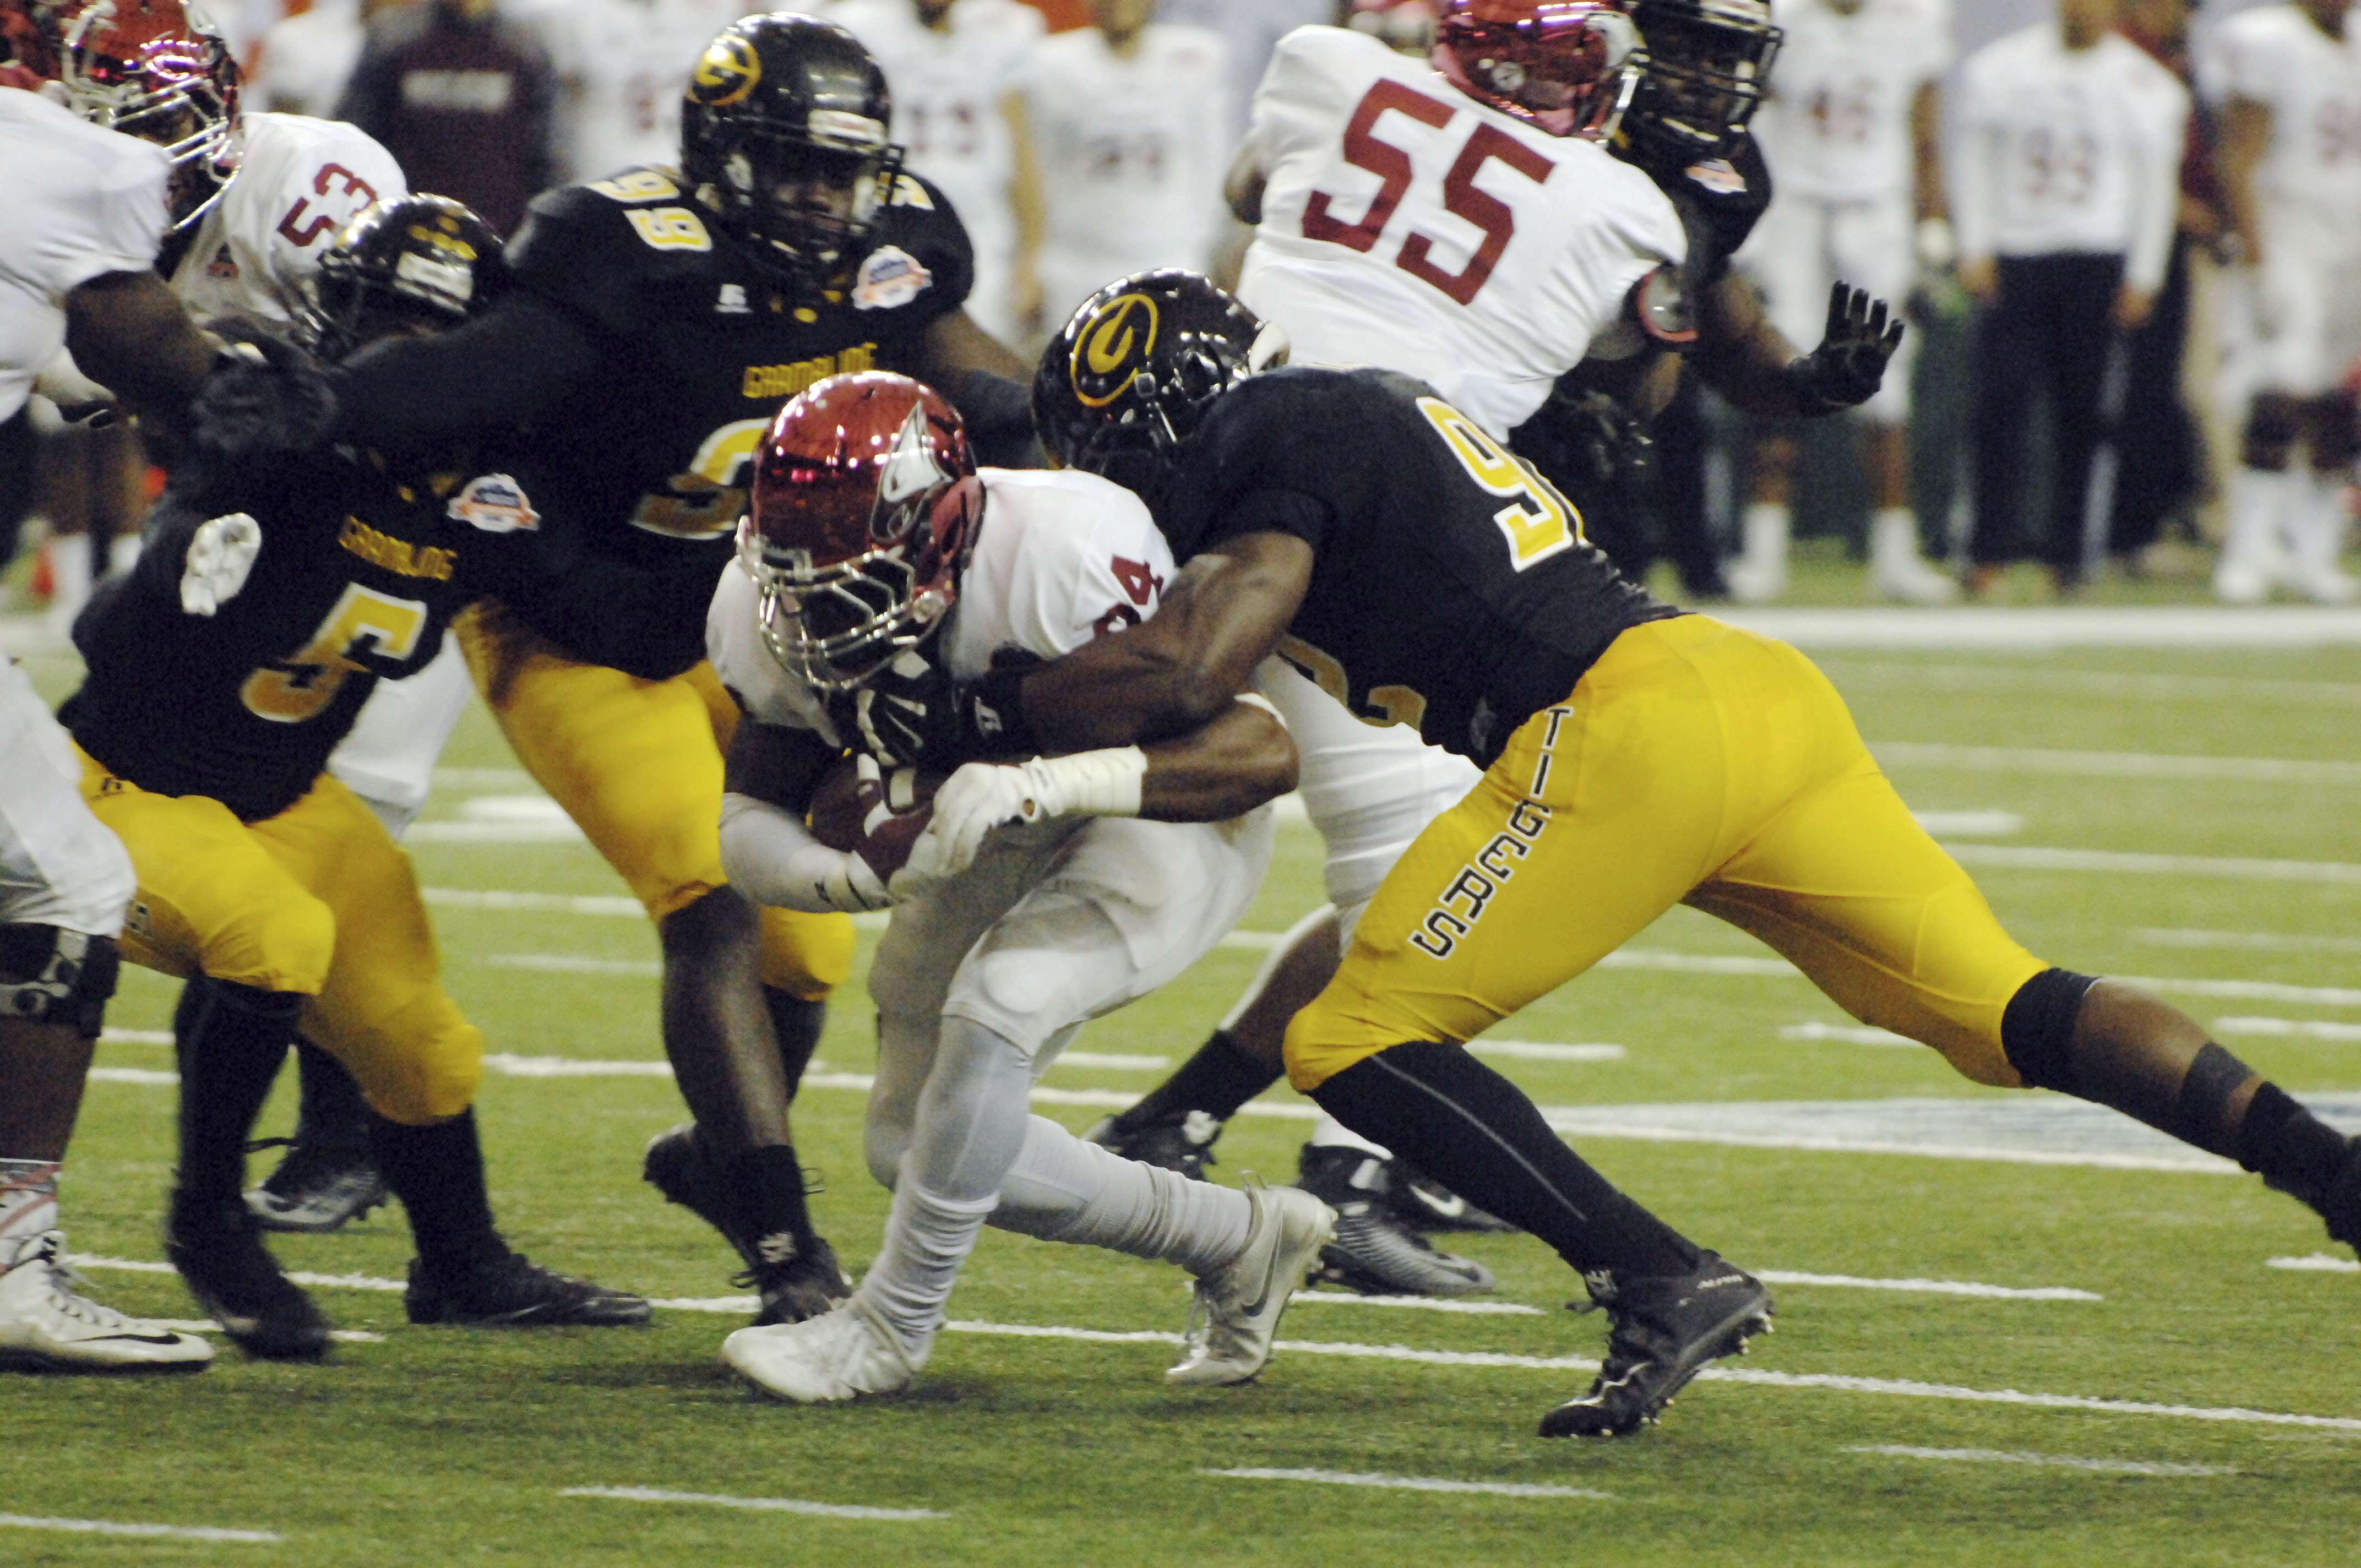 North Carolina Central running back Dorrel McClain is surrounded on the tackle by Grambling State defenders during the first half of the Celebration Bowl College football game at the Georgia Dome in Atlanta on Saturday, Dec. 17, 2016. (W.A. Bridges Jr./At